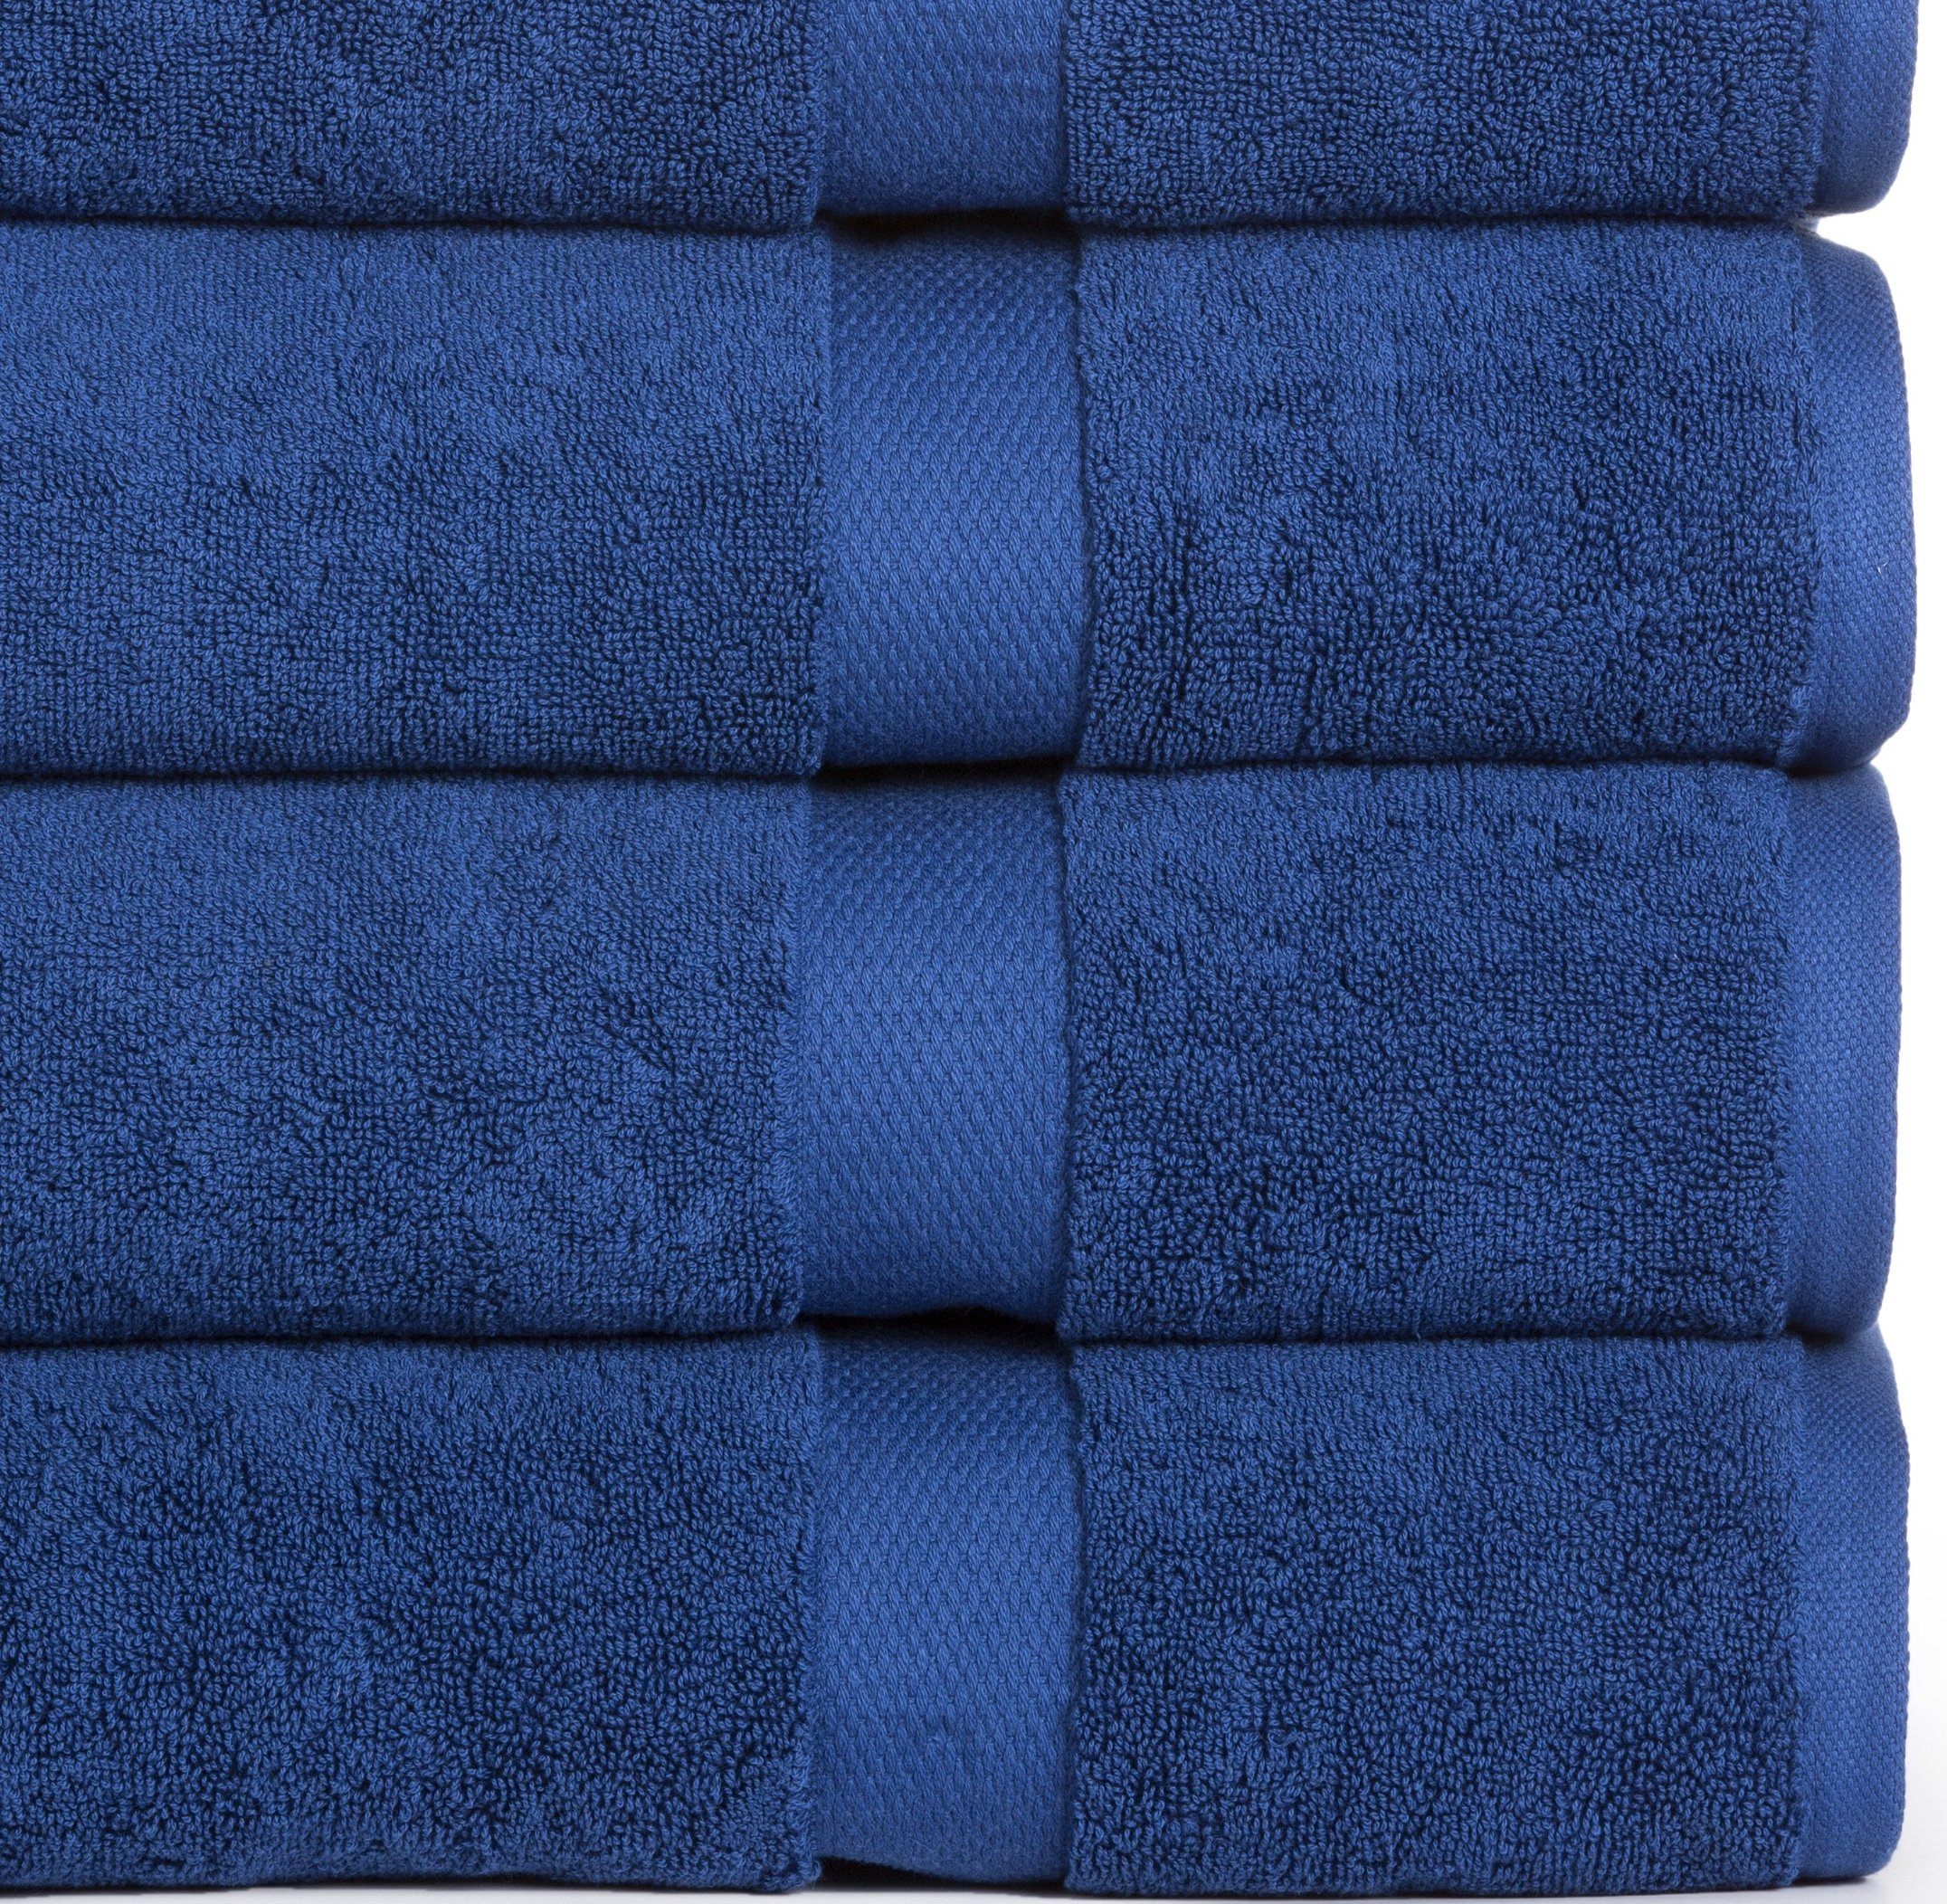 Madhvi Collection 800 GSM Premium Combed Cotton Extra Large 30 x 60 Inch Bath Towels 4 Pack, Oversized and Heavy Bath Towel Set, Hotel and Spa Towels Set With Maximum Softness, High Absorbency (Navy) by Casa Platino (Image #2)